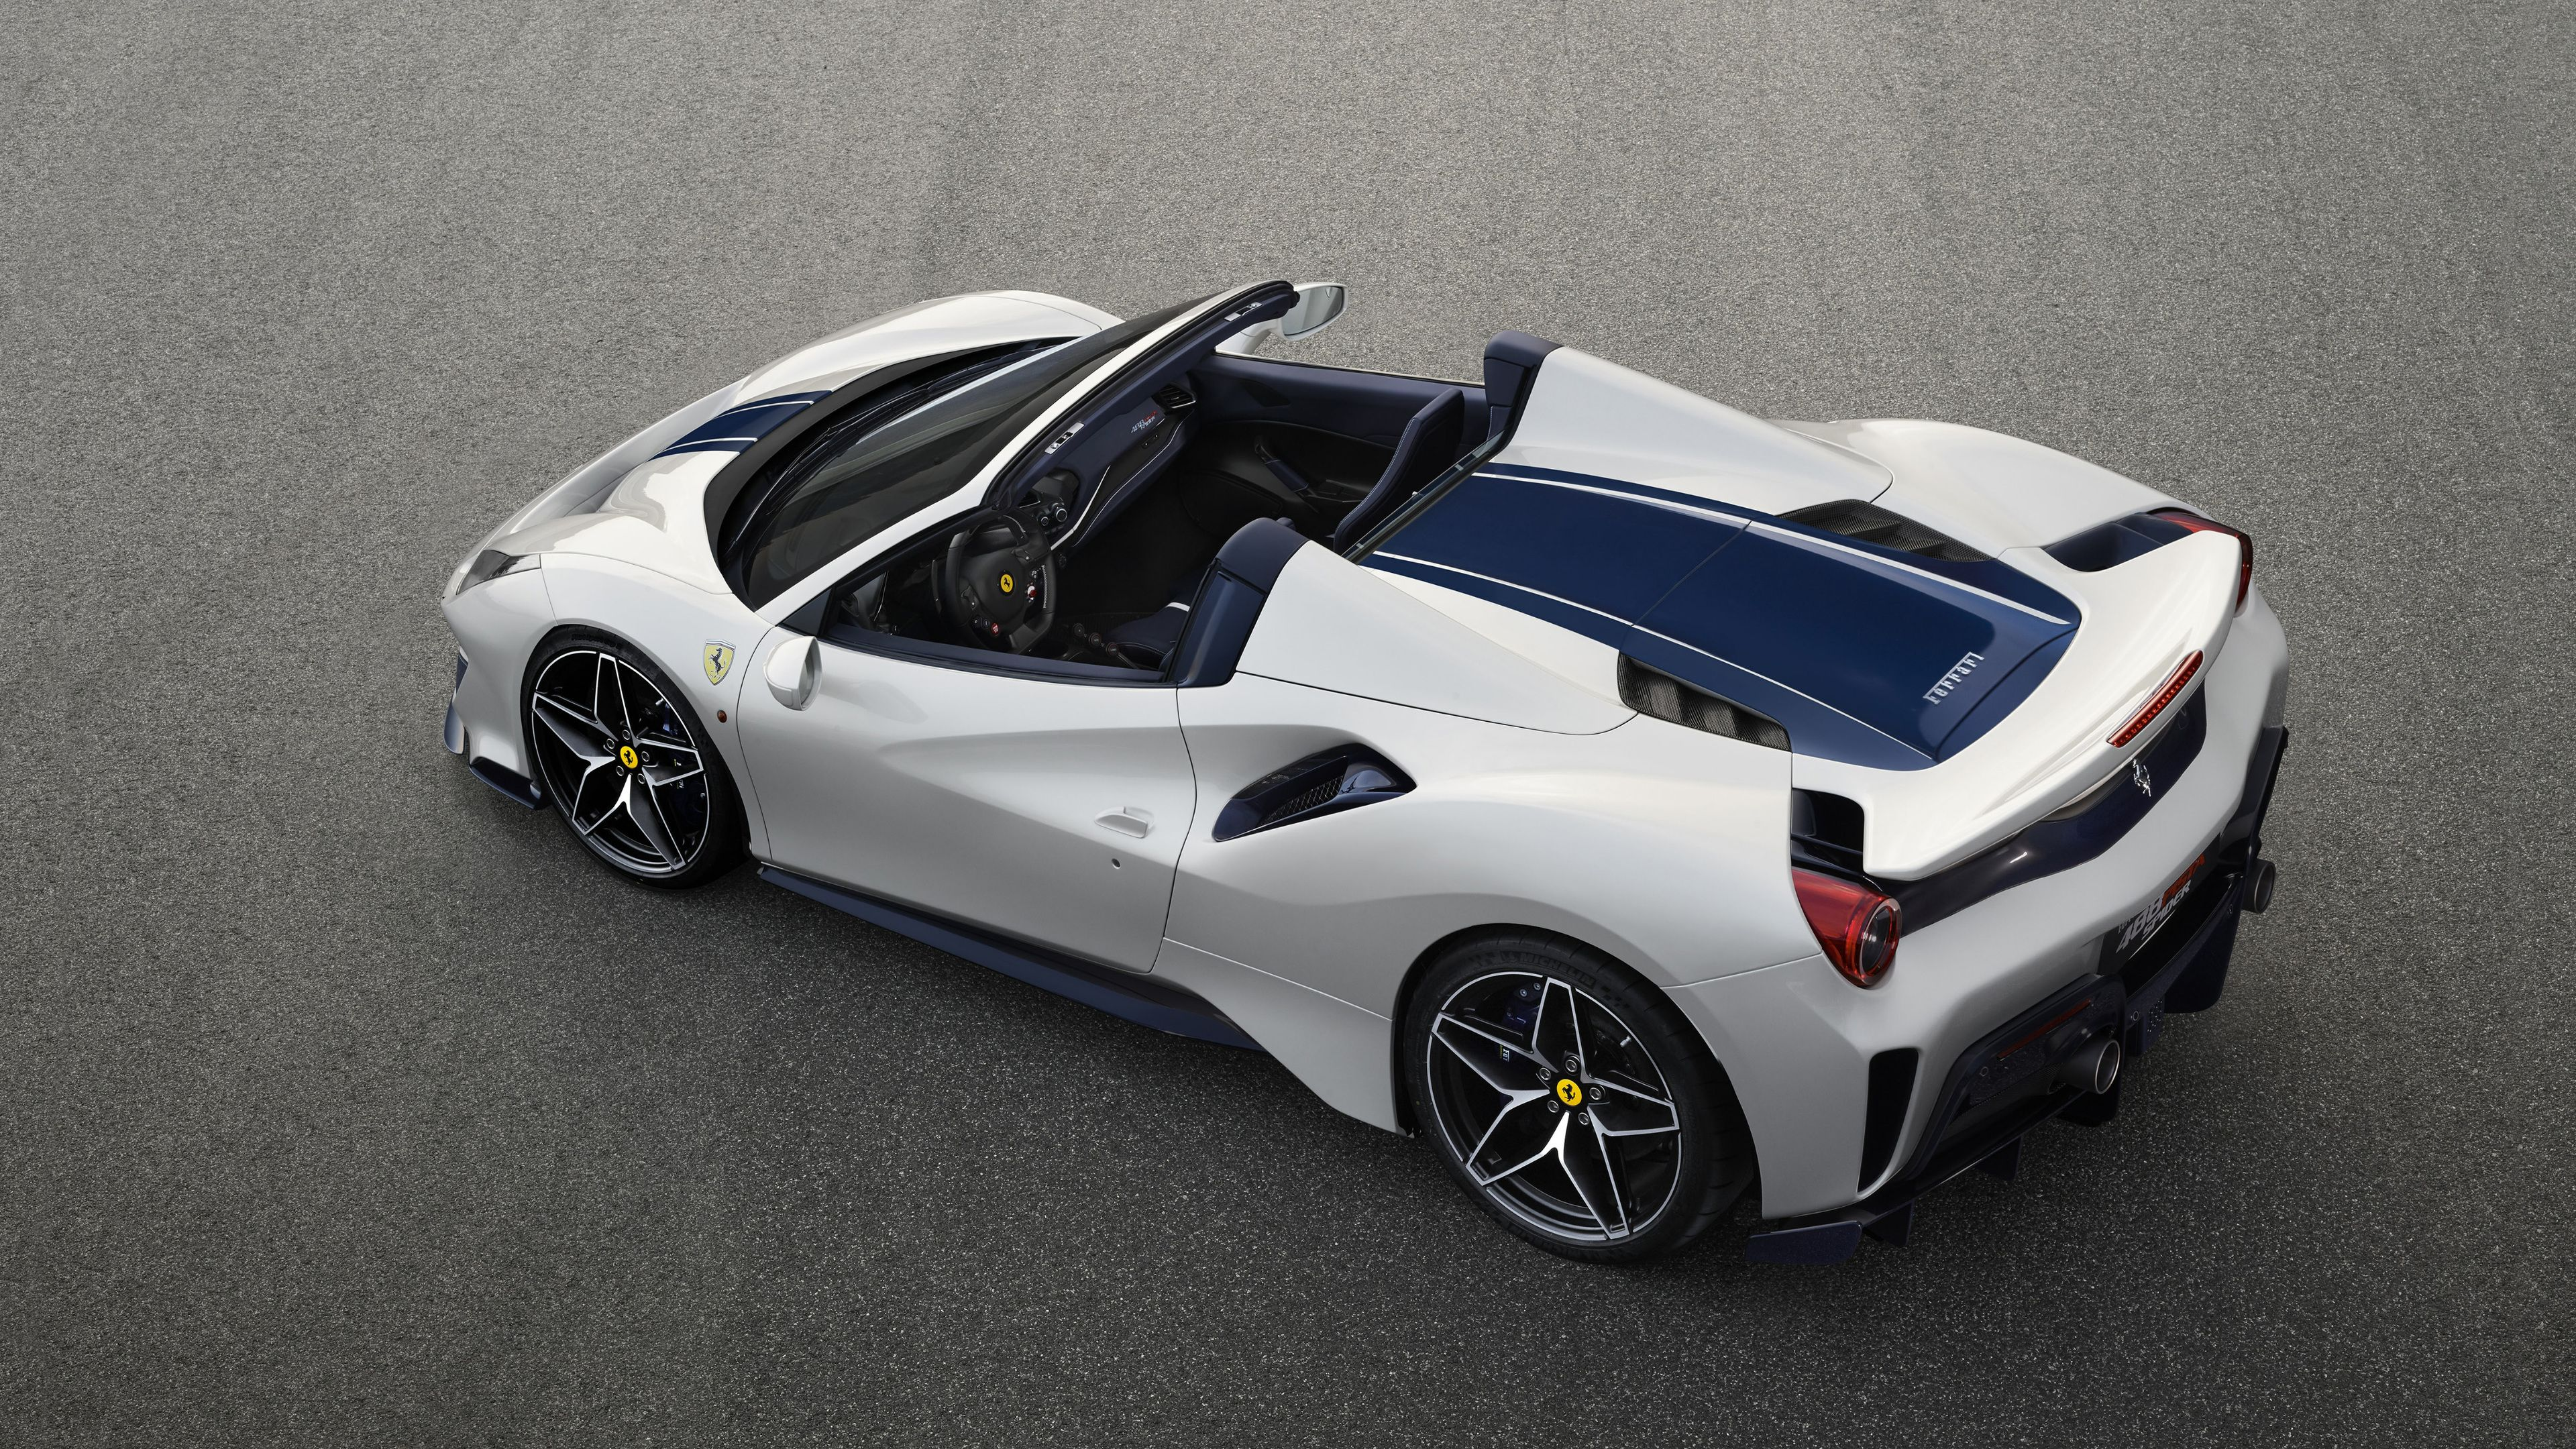 Wallpaper 4k Ferrari 488 Pista Spider 2018 4k 2018 Cars Wallpapers